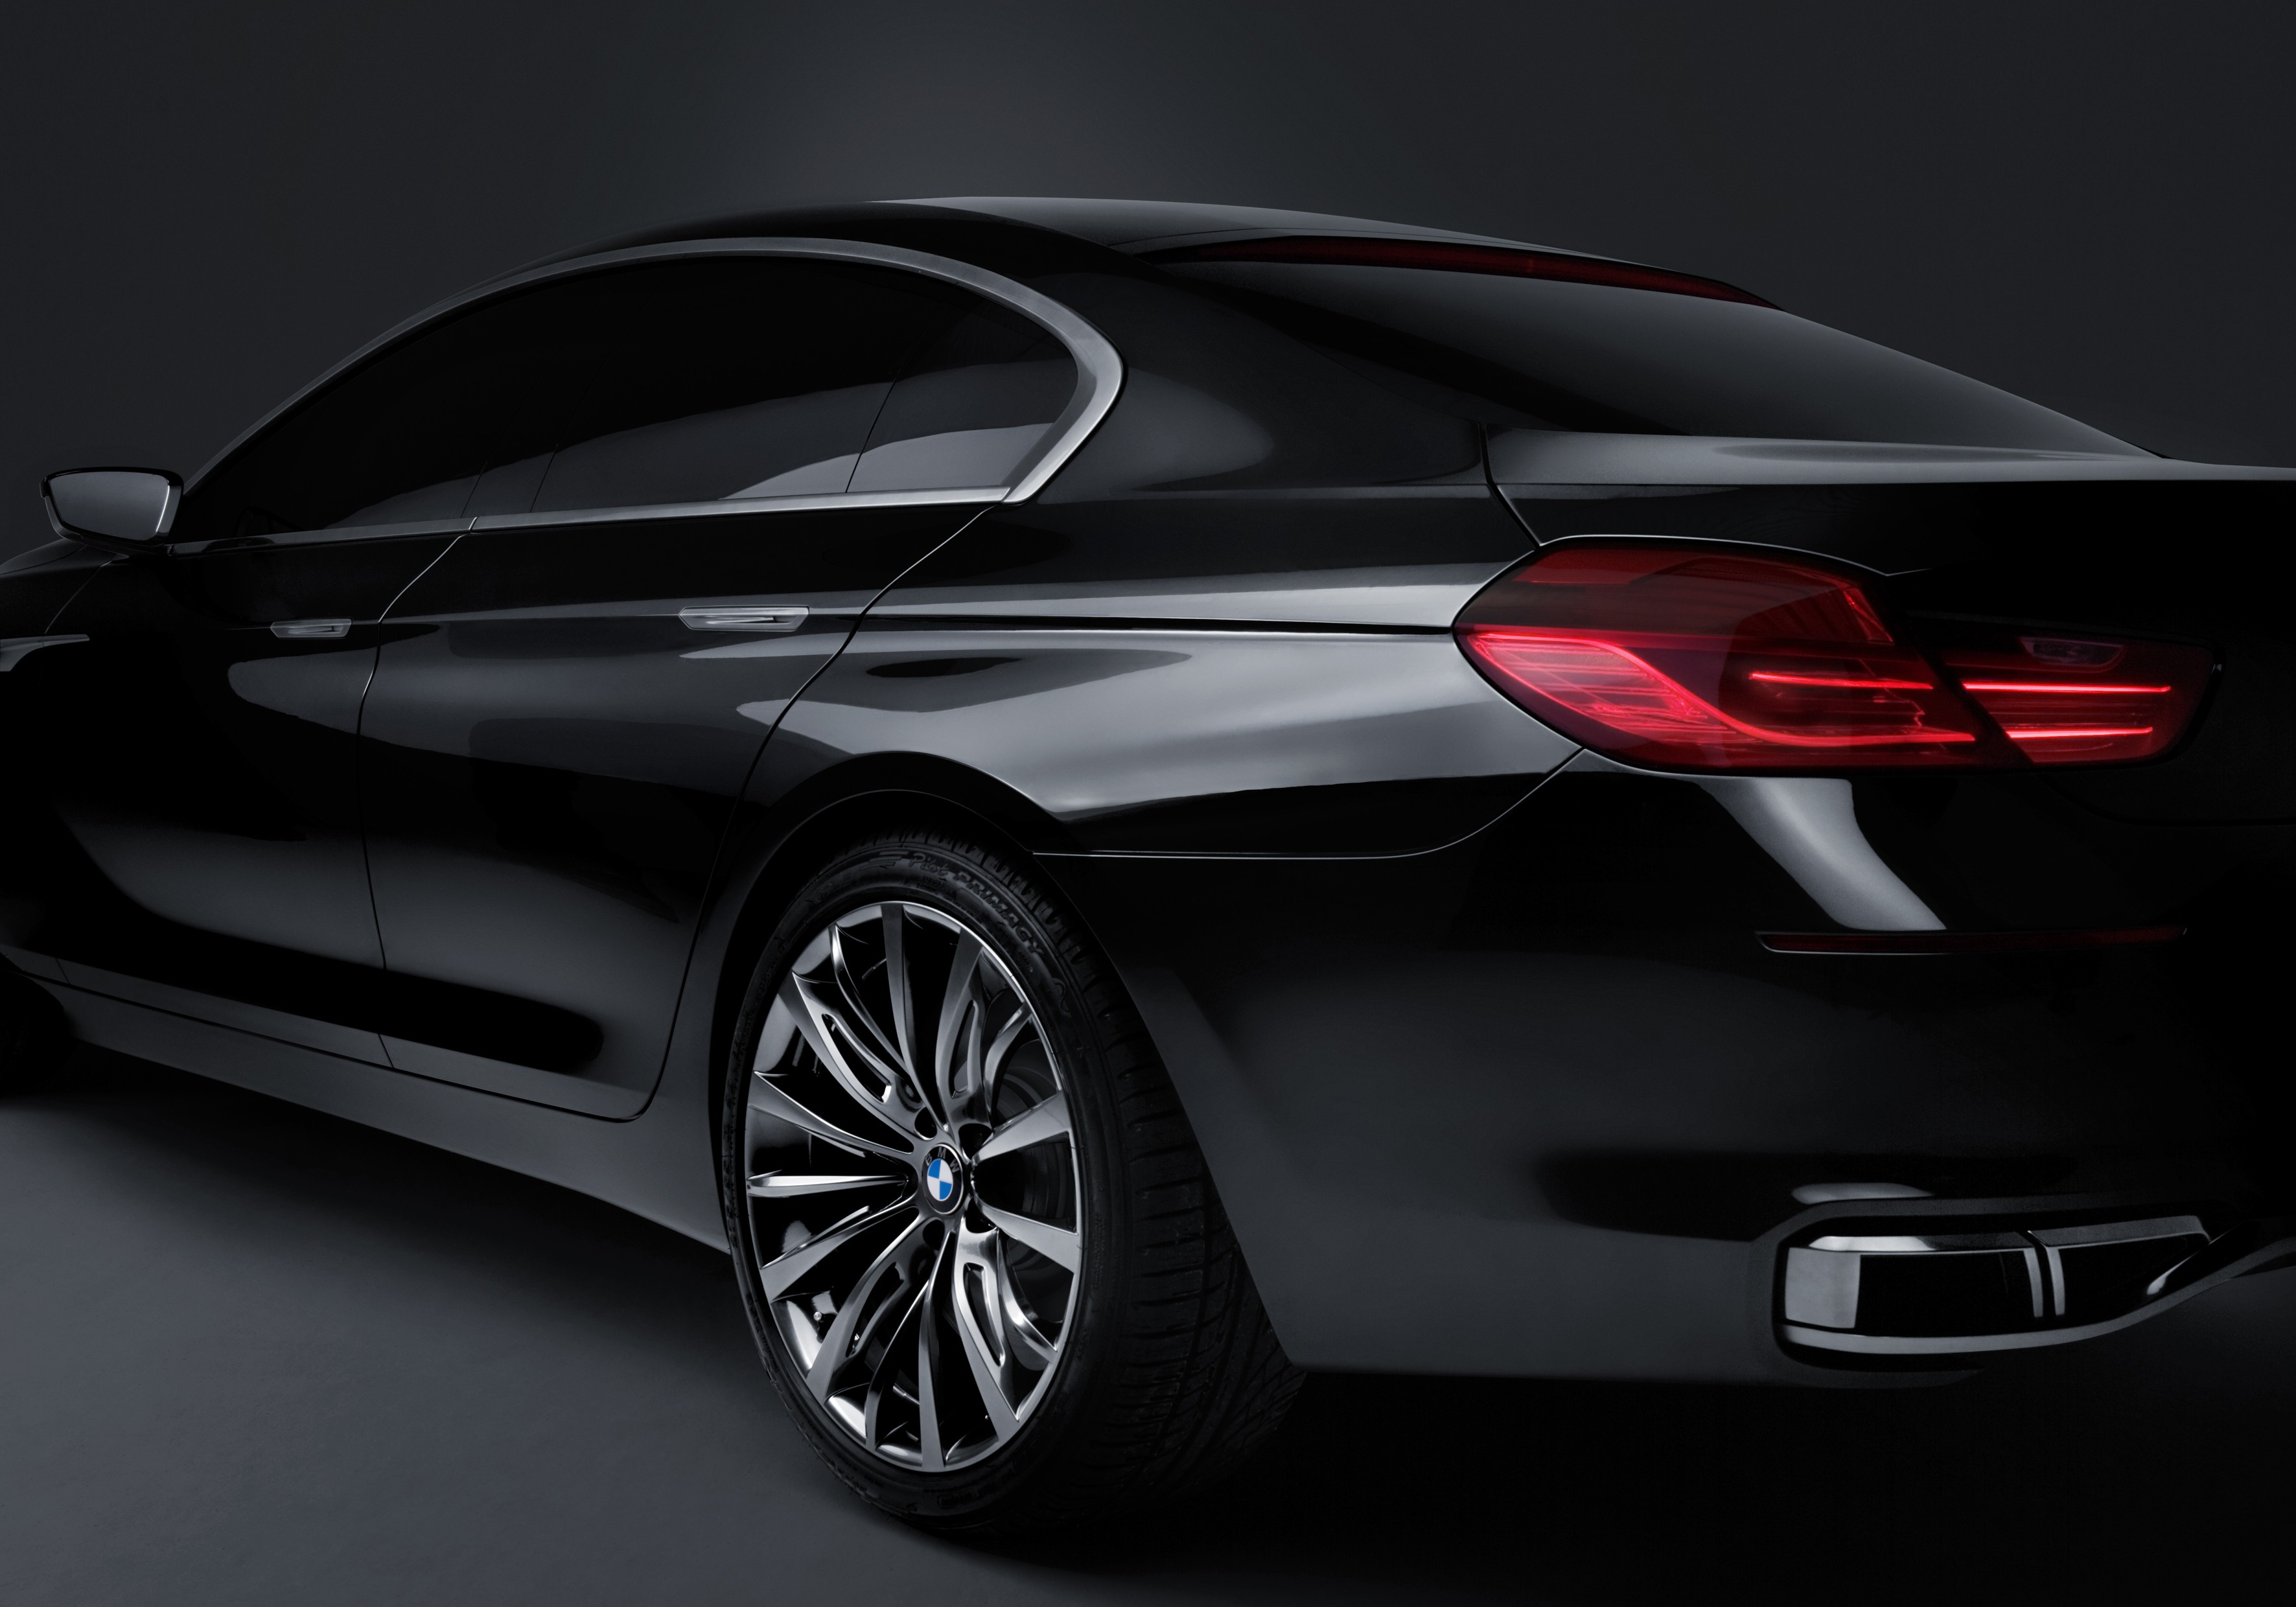 BMW Concept Gran Coupe will use the same powertrain as the 5, 6, and 7 series.